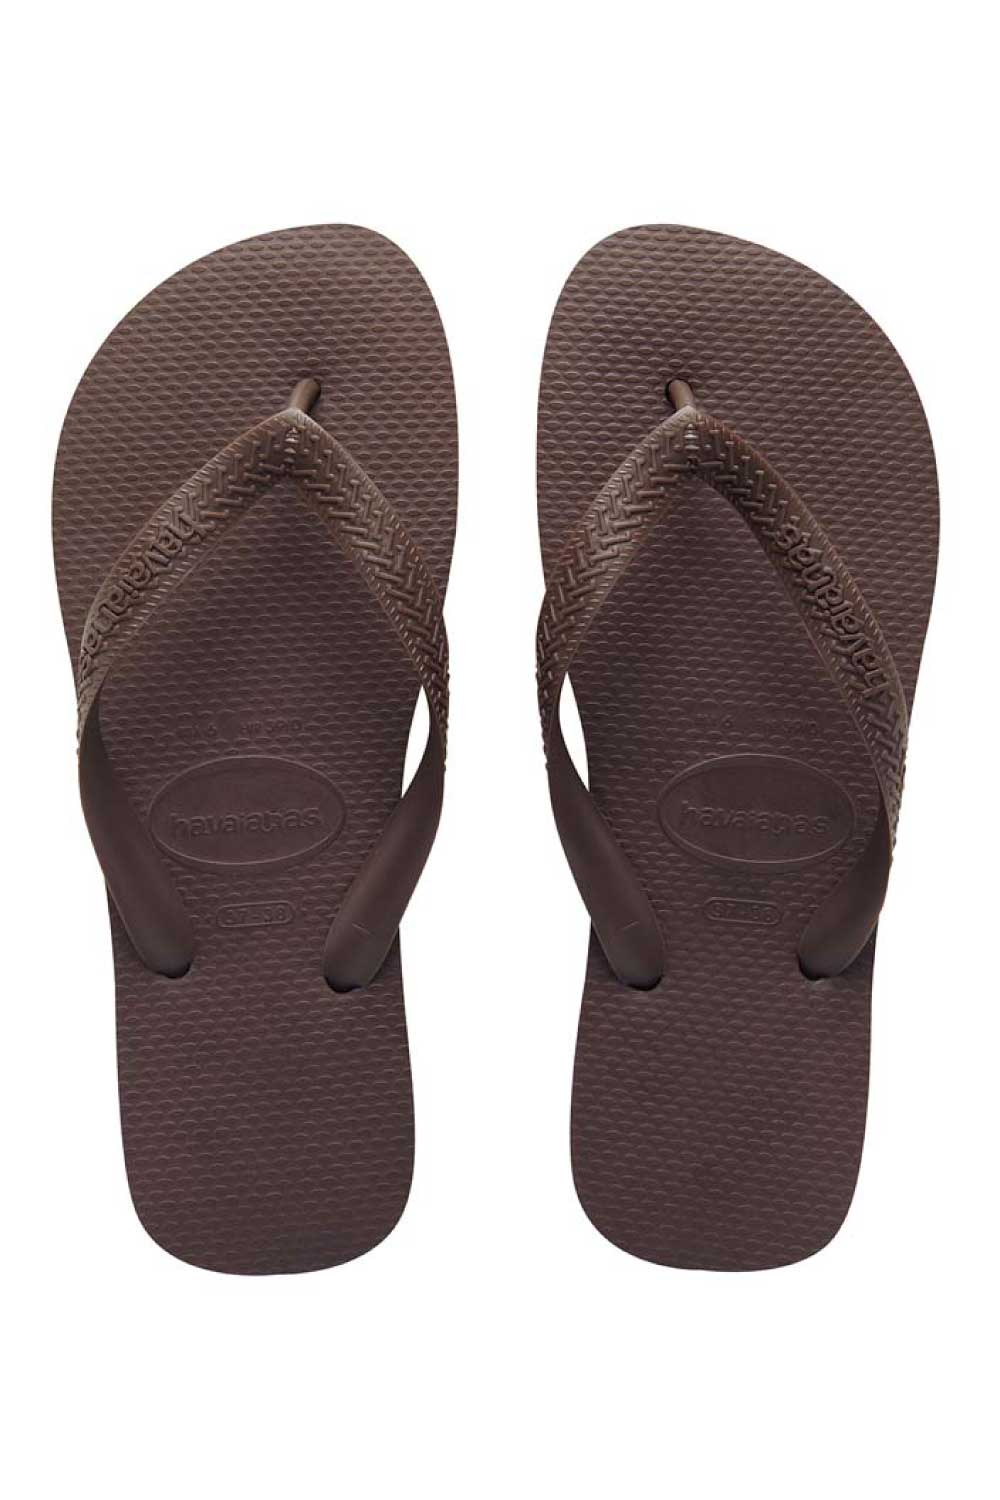 Havaianas Top Brown Thongs